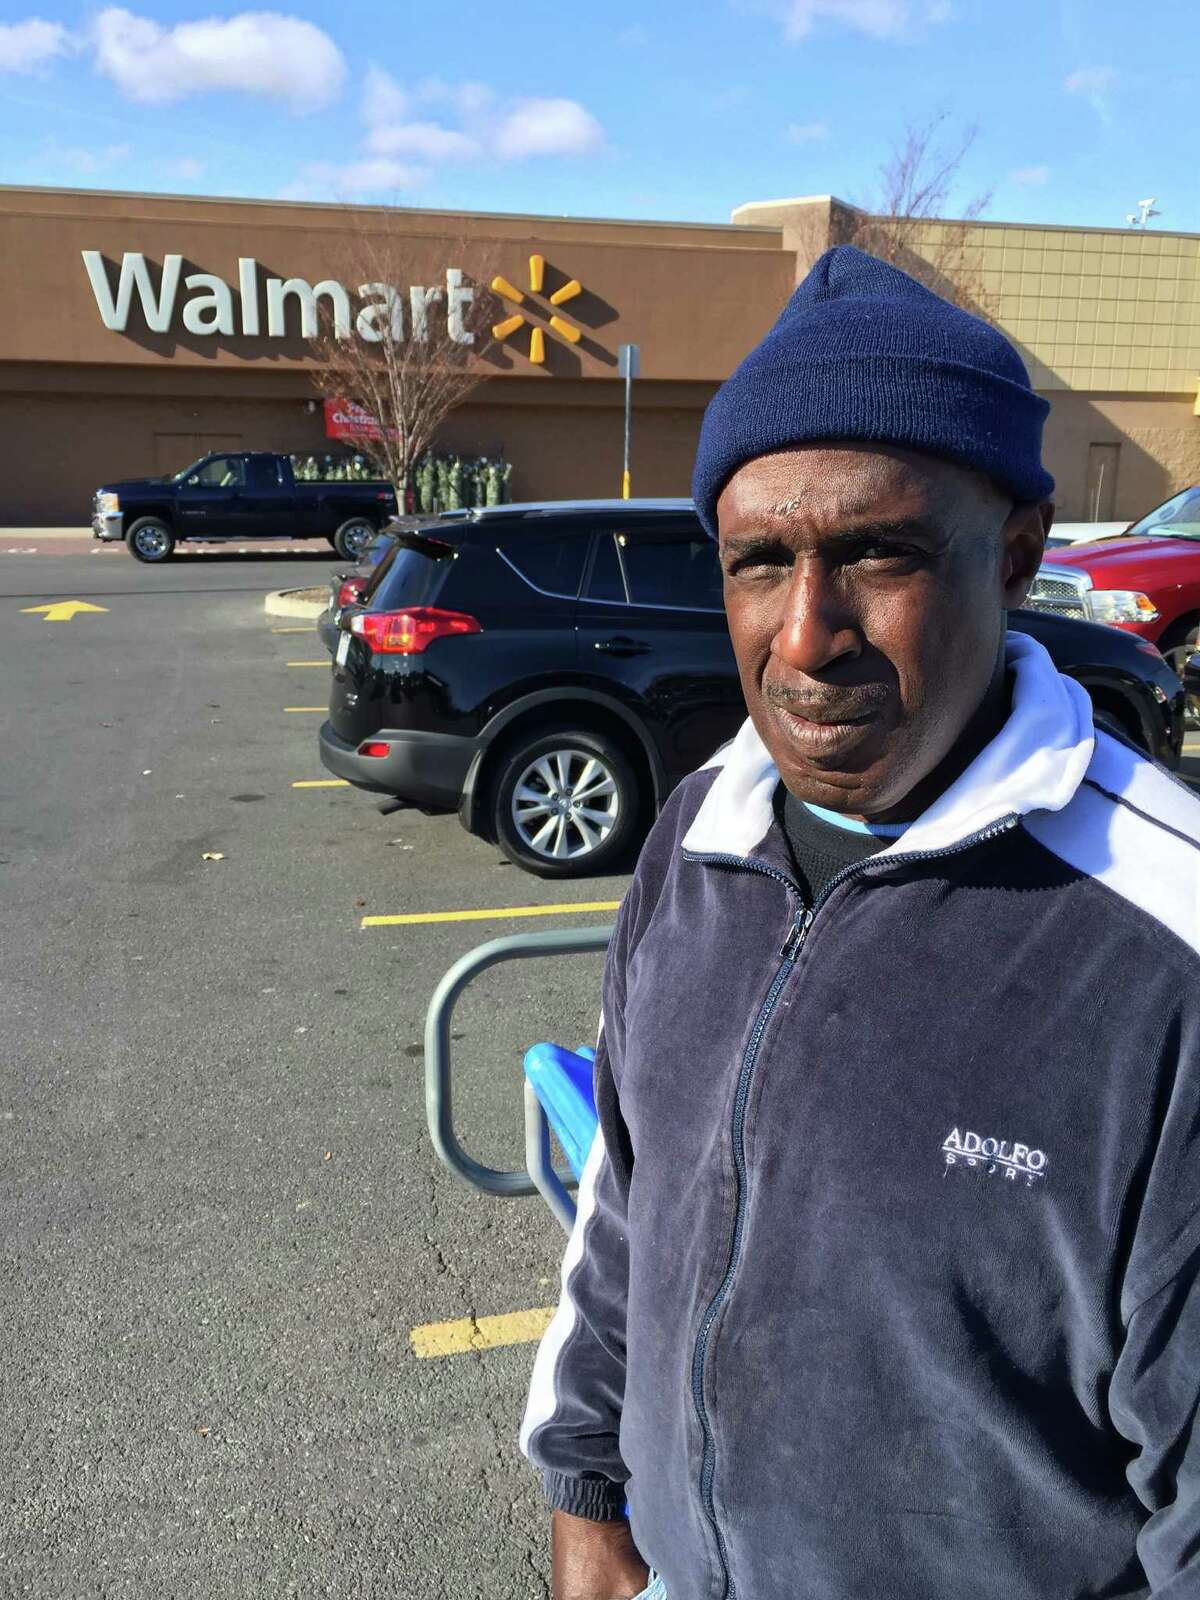 Thomas Smith, 52, of Albany, an ex-convict who was formerly homeless, was fired from his $9-an-hour job gathering shopping carts at the Wal-Mart Supercenter in East Greenbush after he redeemed $5.10 worth of empty cans and bottles discarded in the parking lot. (Paul Grondahl / Times Union)